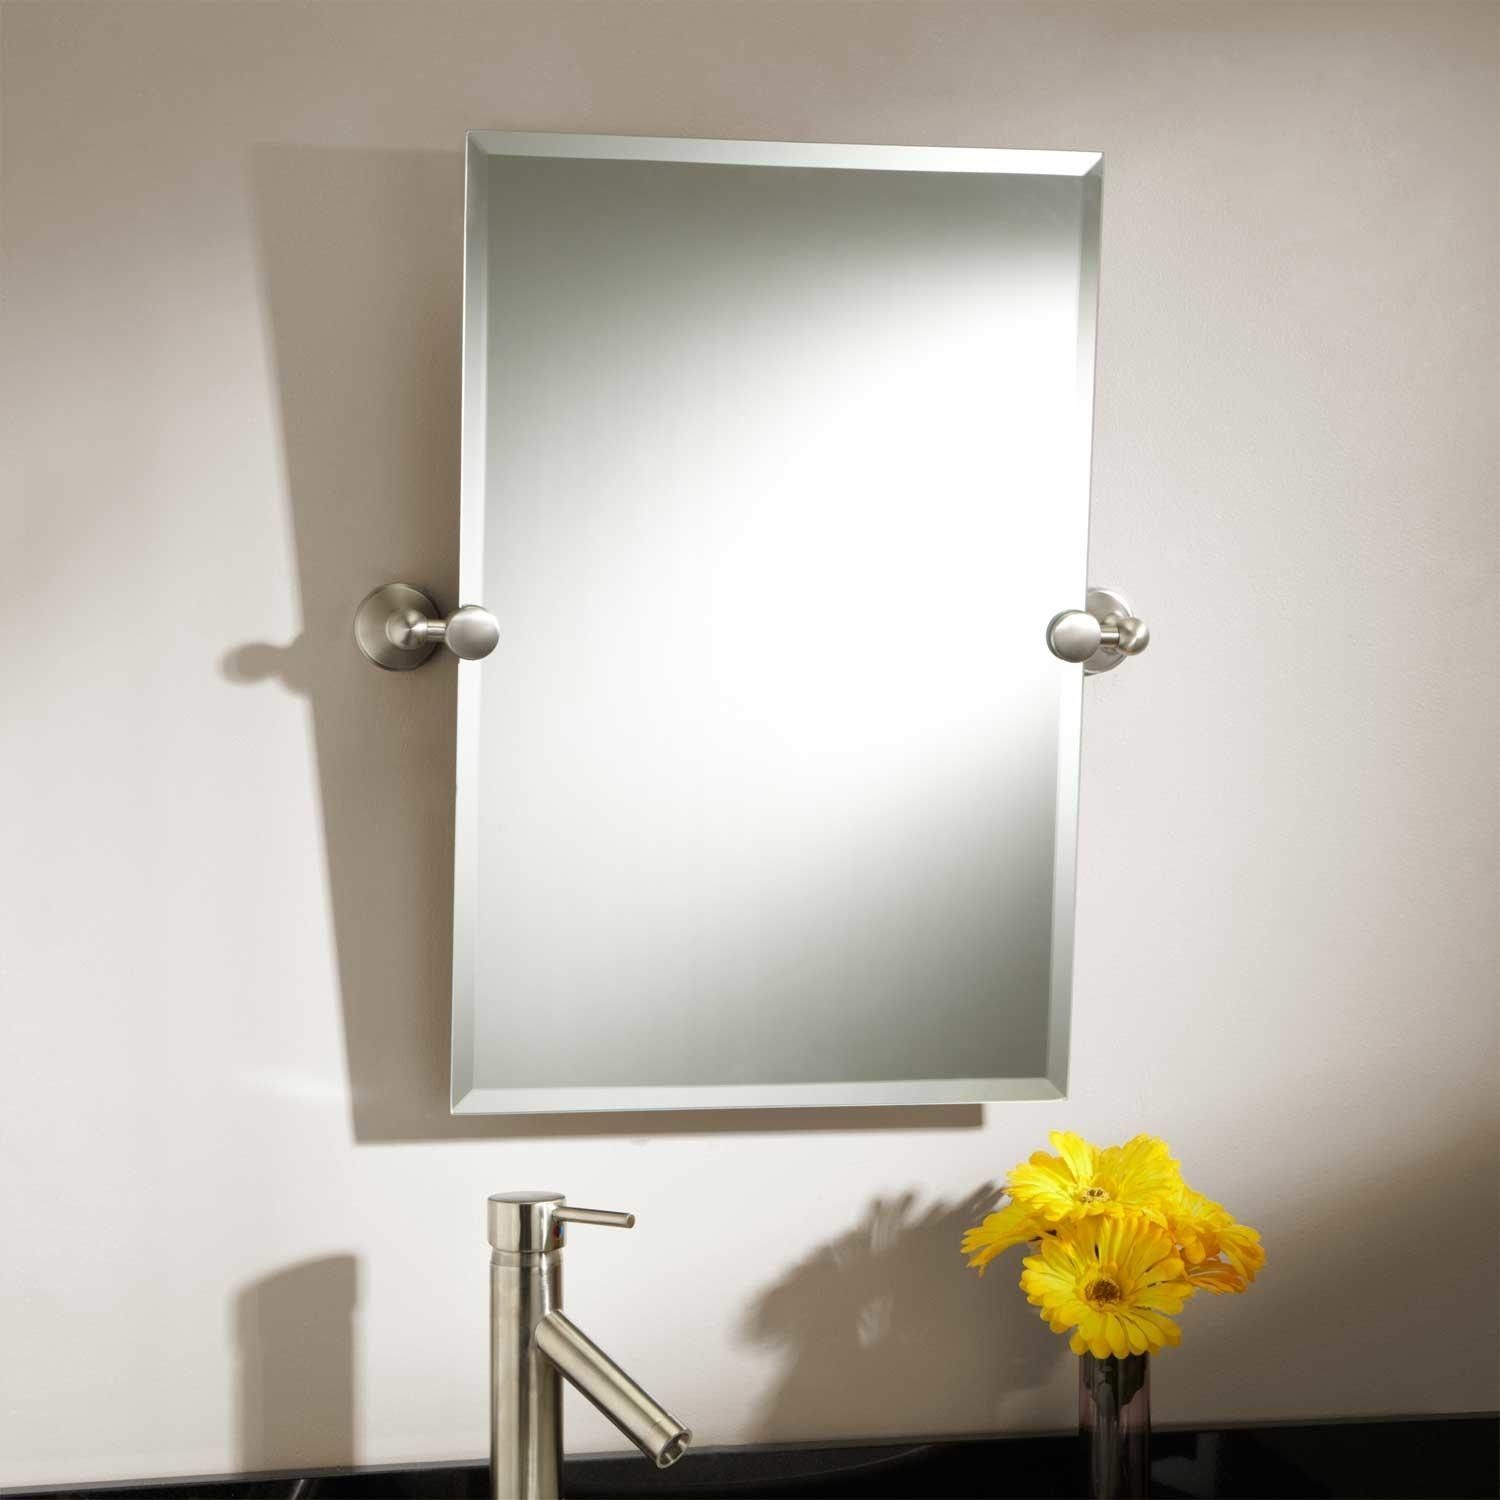 Decorative Brushed Nickel Mirror Tilting Bathroom Mirror Brushed Nickel Bathroom Ideas